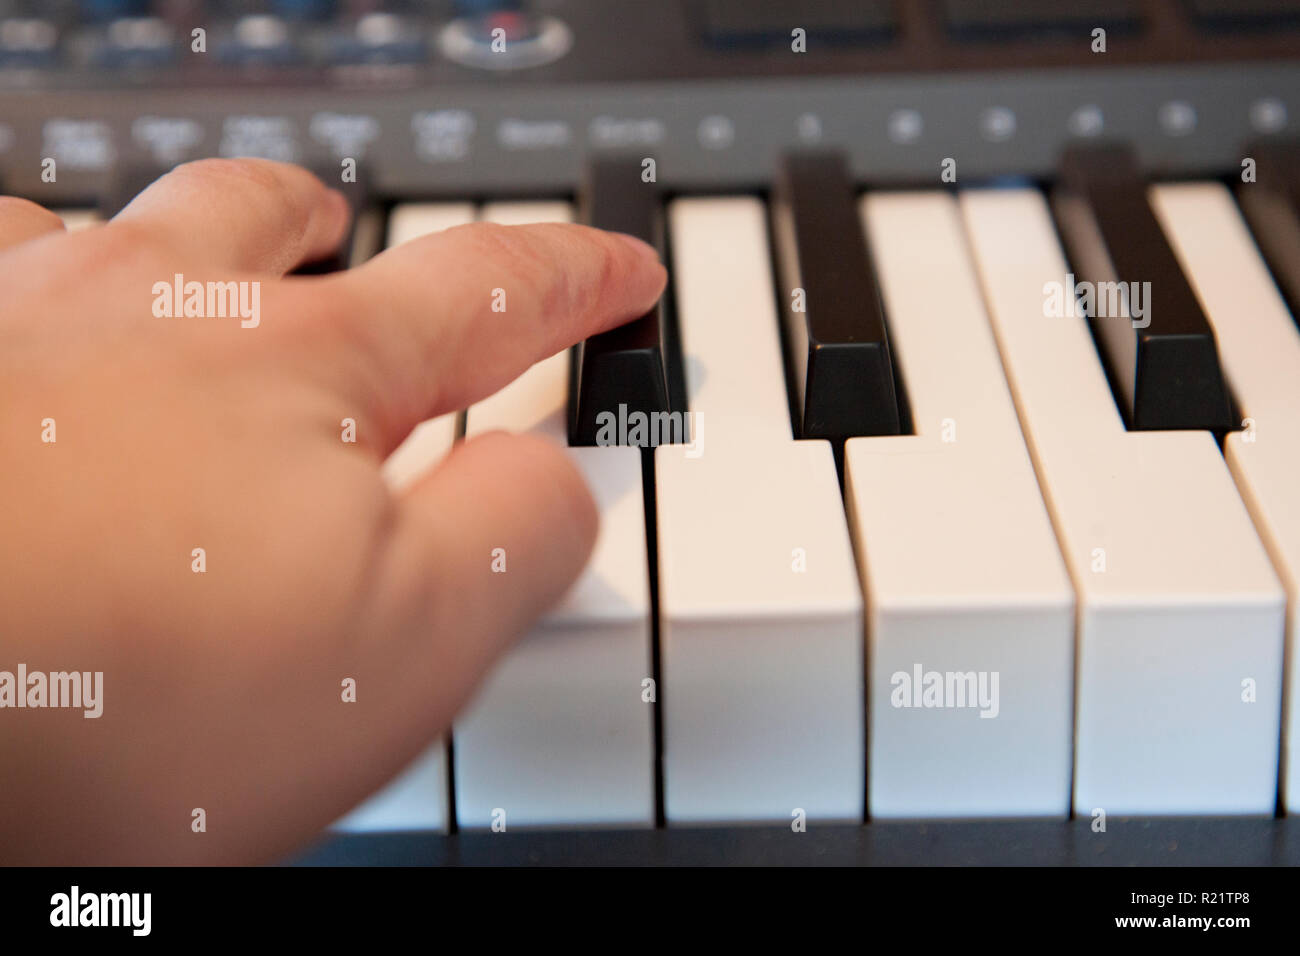 Fingers playing on a digital media keyboard or piano - Stock Image